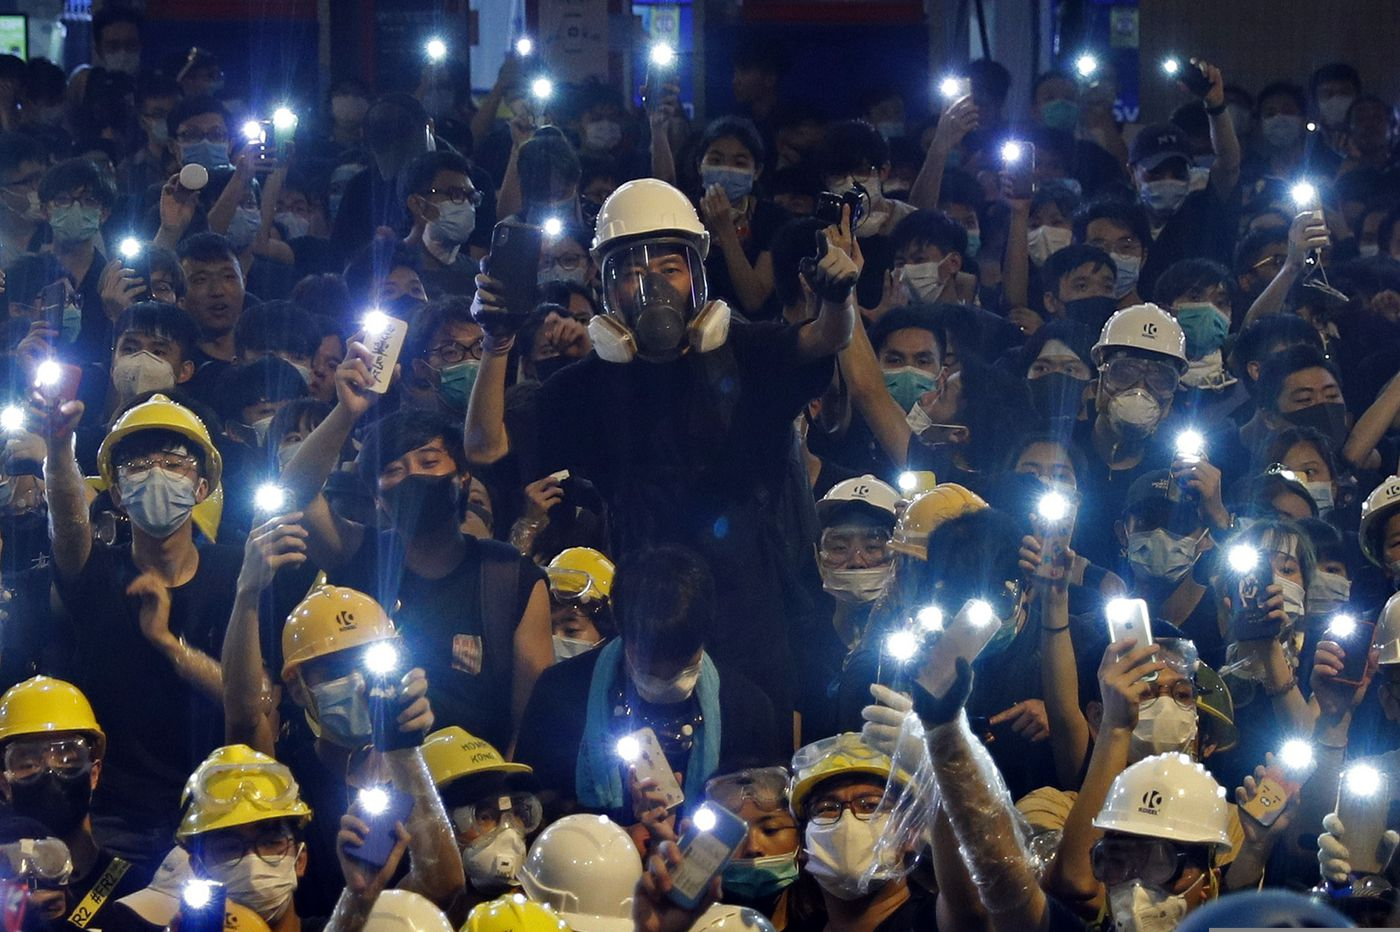 Fresh Hong Kong protest ends peacefully with demands unmet